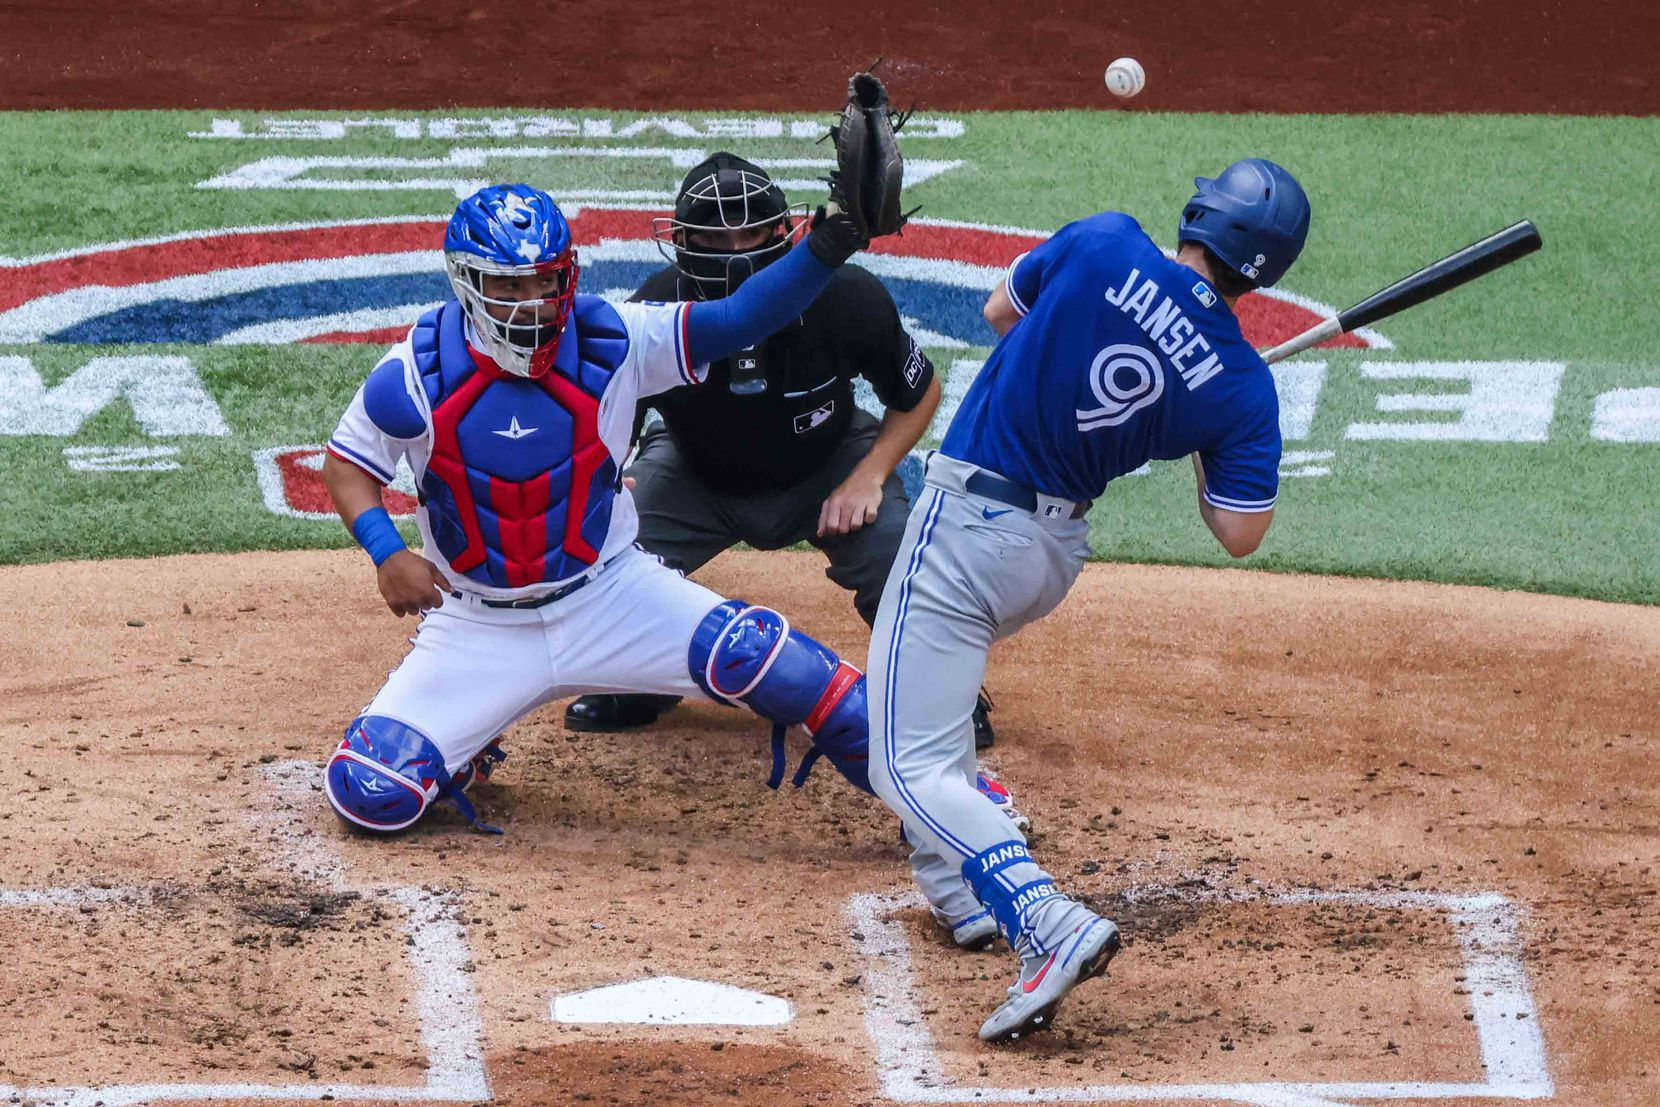 Toronto Blue Jays' Danny Jansen No. 9 dodges a ball in home plate at the Globe Life Field during opening day against Texas Rangers in Arlington, Texas on Monday, April 5, 2021. (Lola Gomez/The Dallas Morning News)